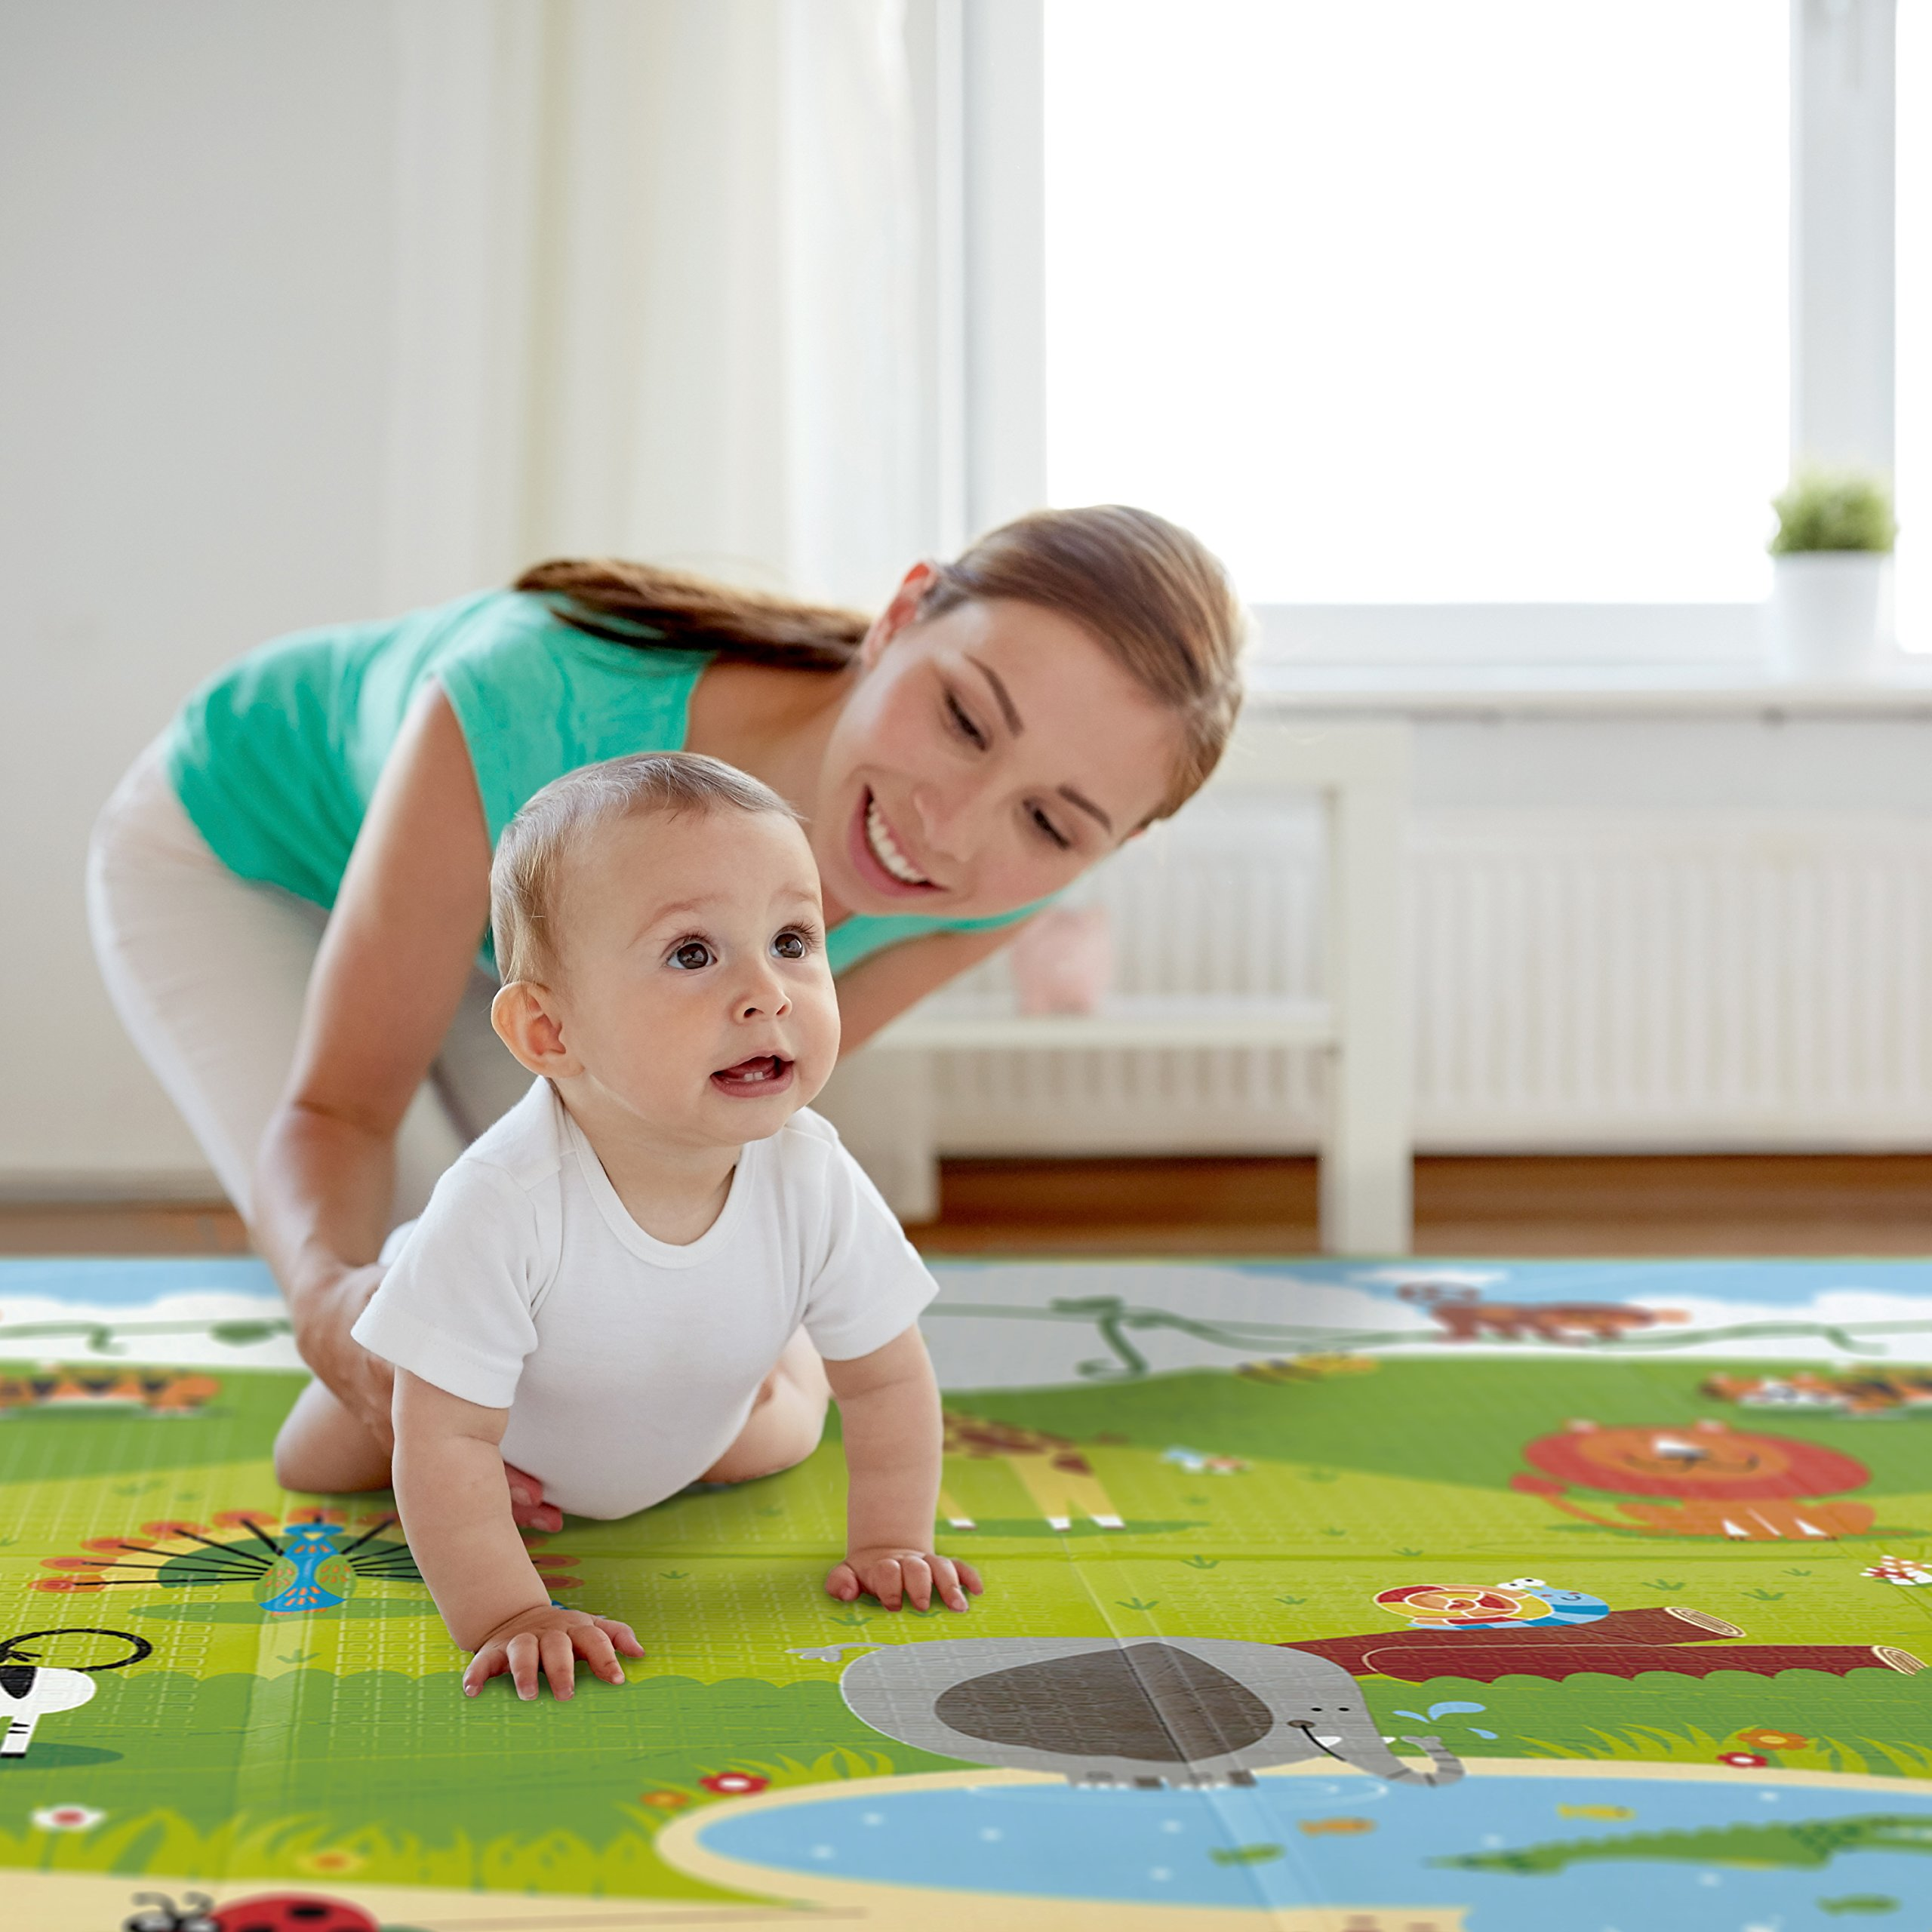 """USA Toyz Baby Play Mat - """"Hape Foldable Play Mat"""" Baby Gym Nontoxic Waterproof Baby Play Mats for Infants 3+ Mths with Kids Play Mat Carry Case by Hape (Image #3)"""